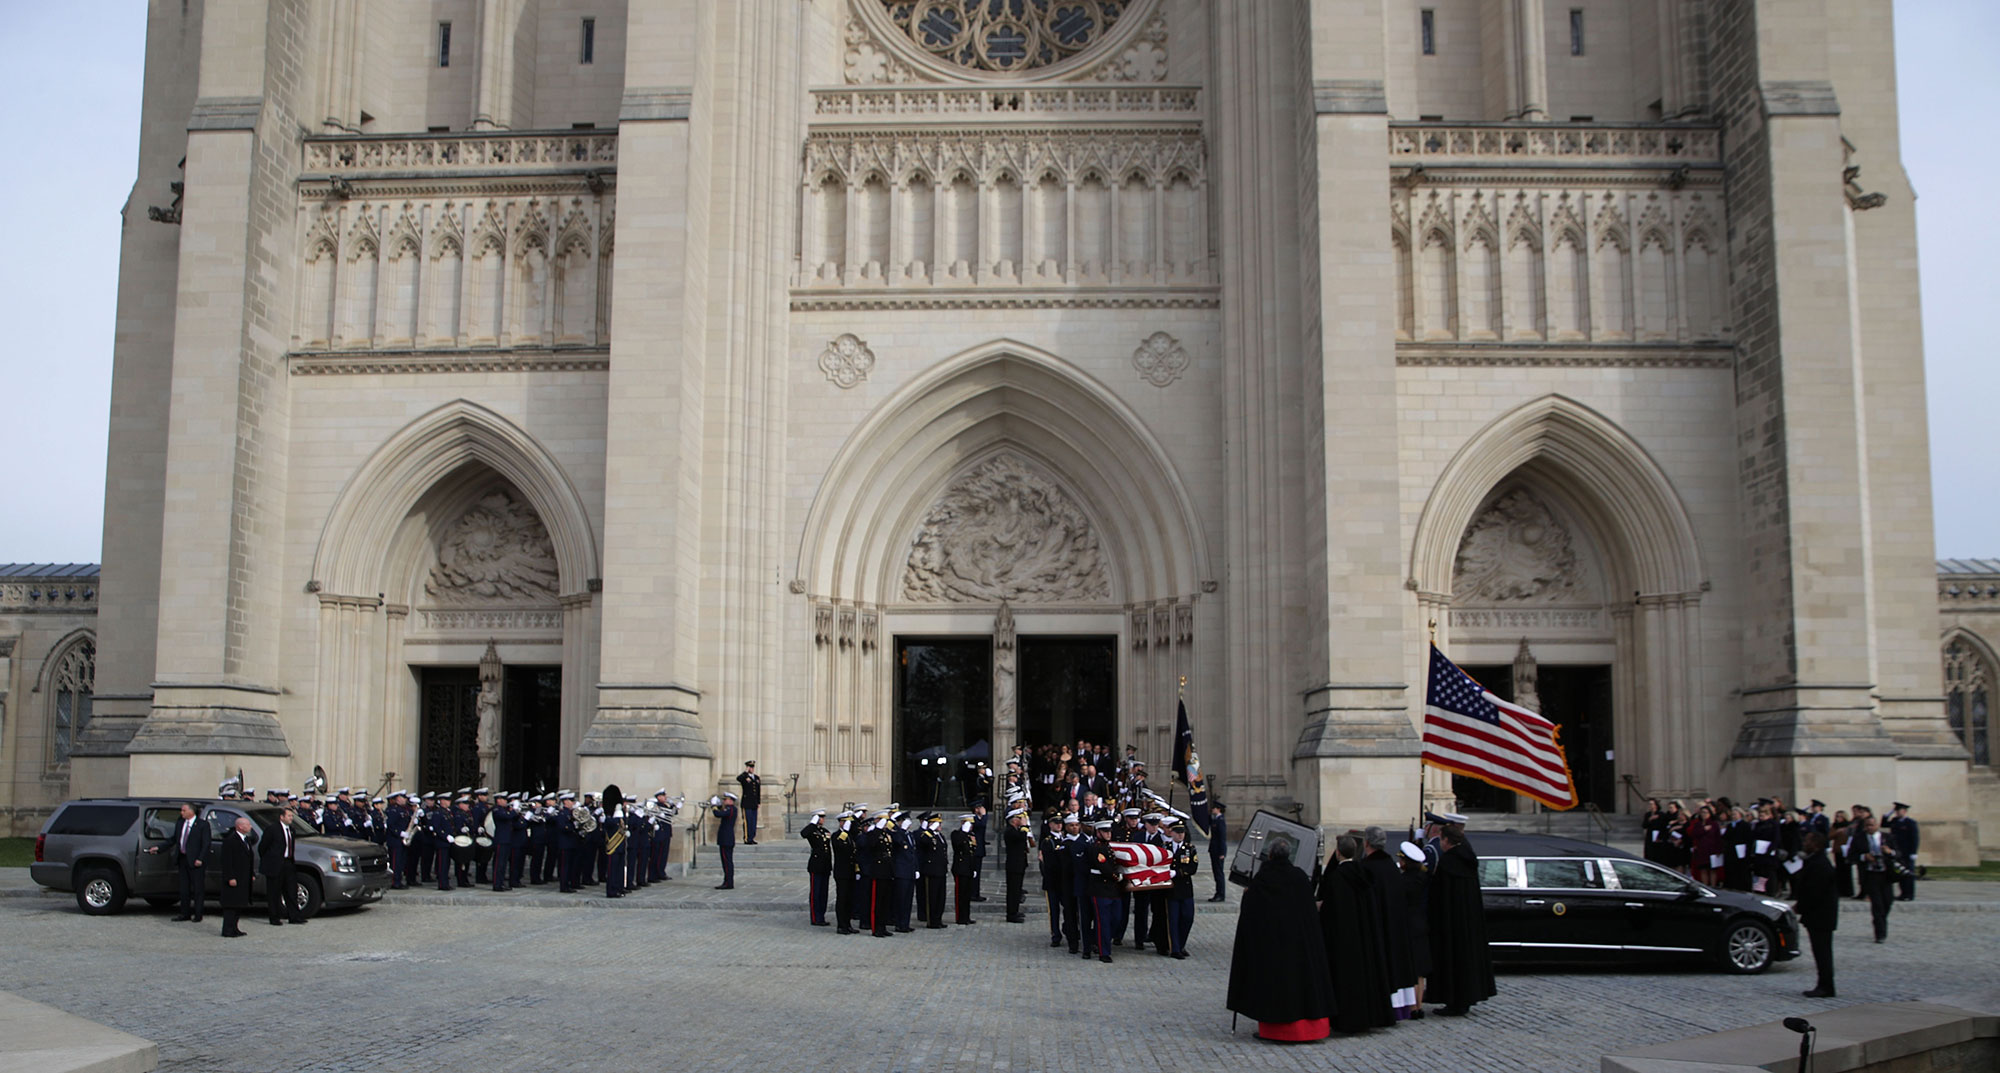 "<div class=""meta image-caption""><div class=""origin-logo origin-image none""><span>none</span></div><span class=""caption-text"">A joint service honor guard carries the casket of former US President George H.W. Bush to an awaiting hearse after his state funeral at the Washington National Cathedral. (Alex Wong/Getty Images)</span></div>"